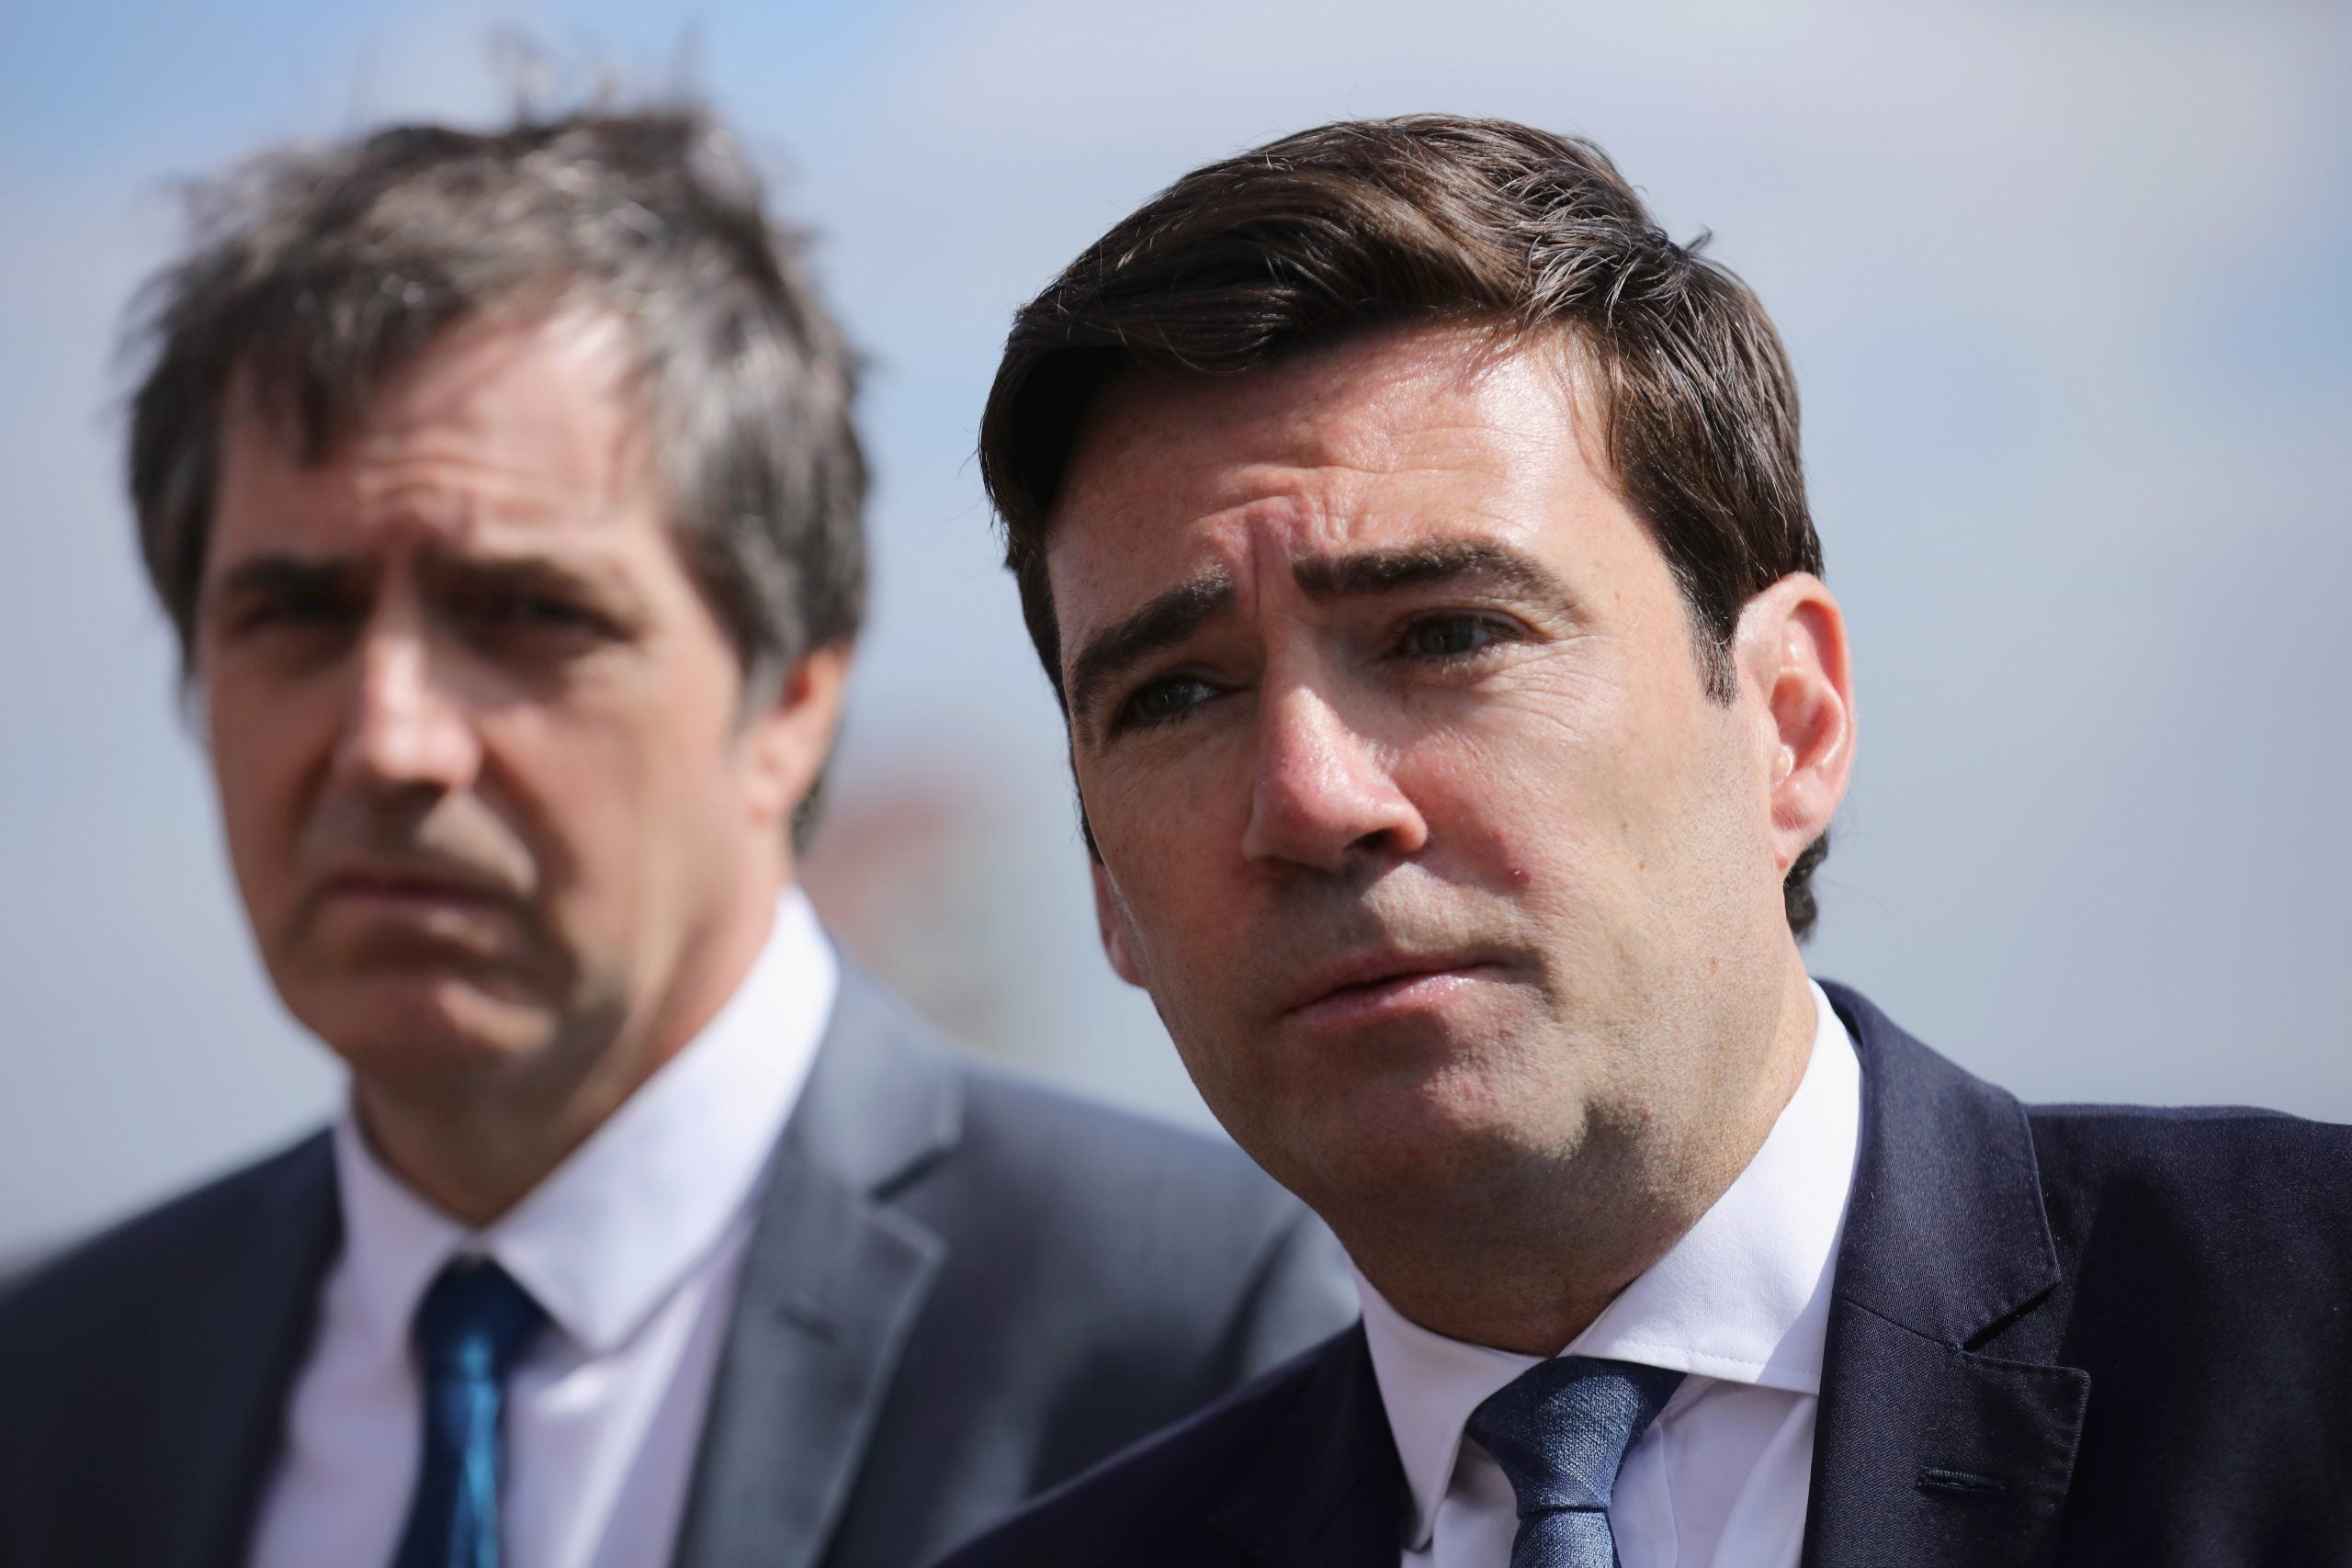 Eight questions for the Labour leadership candidates